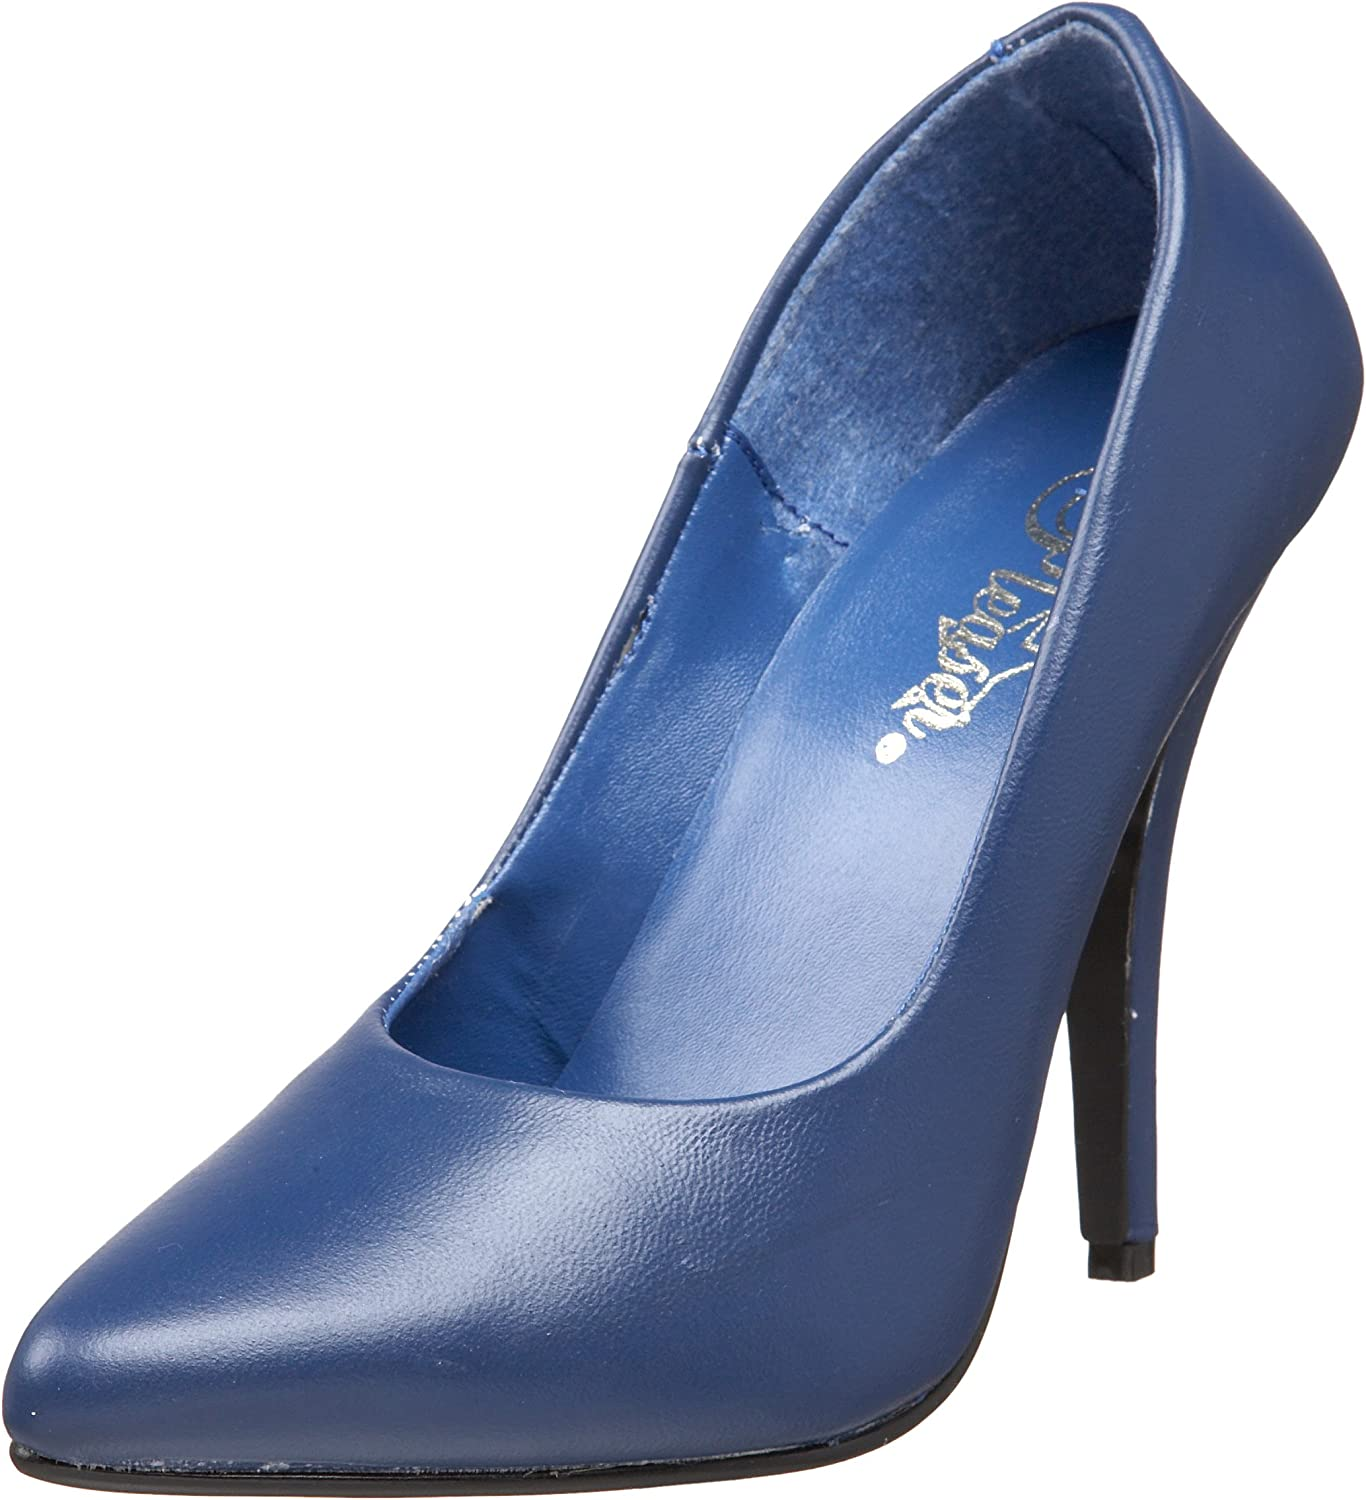 SEDUCE-420, 5  Classic Pump shoes